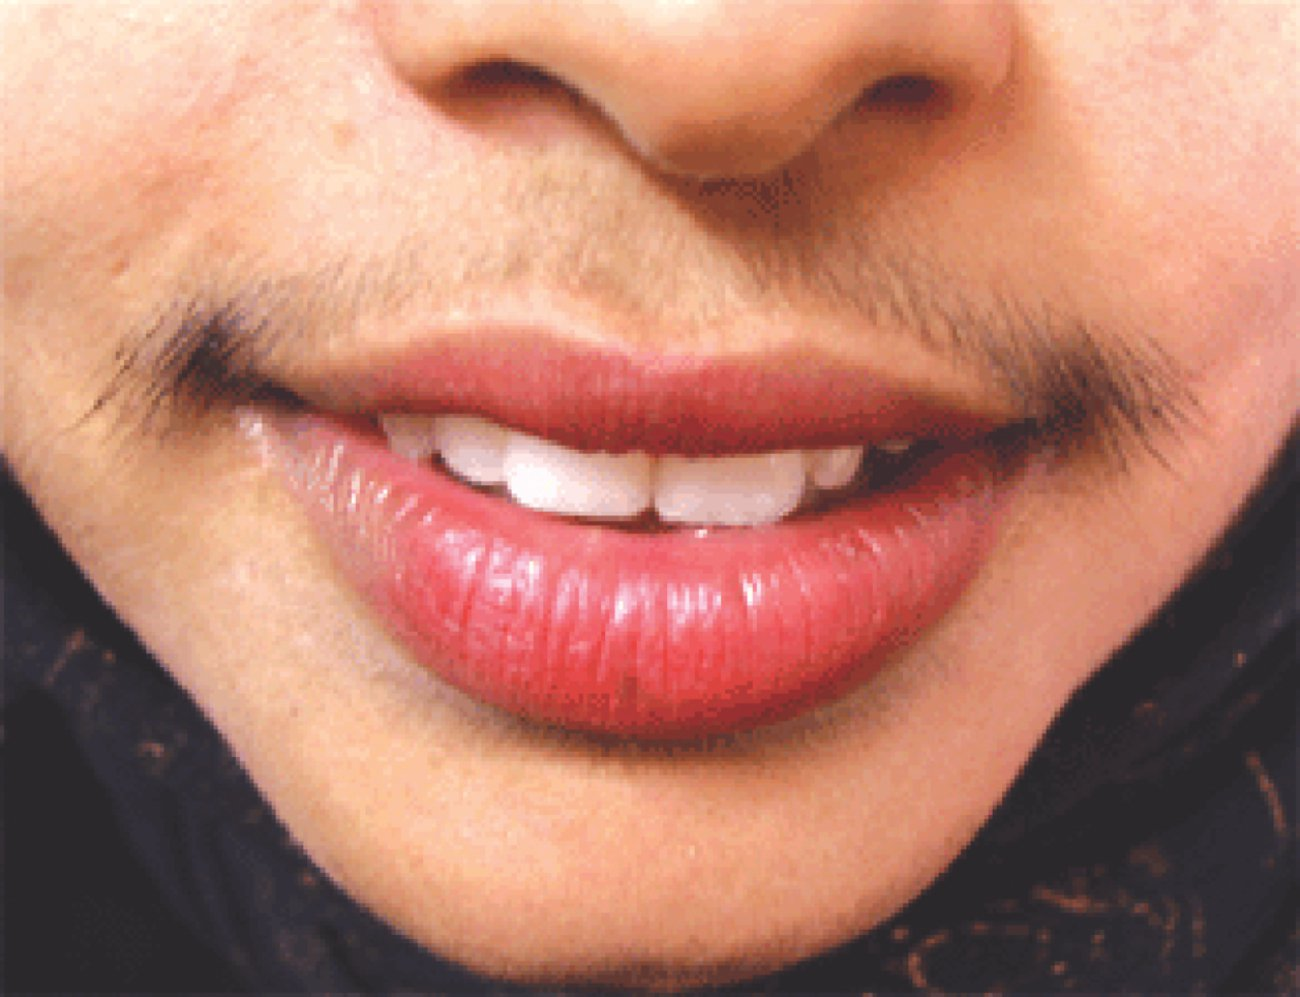 Hirsutism May Be A Sign Of Serious Medical Condition The